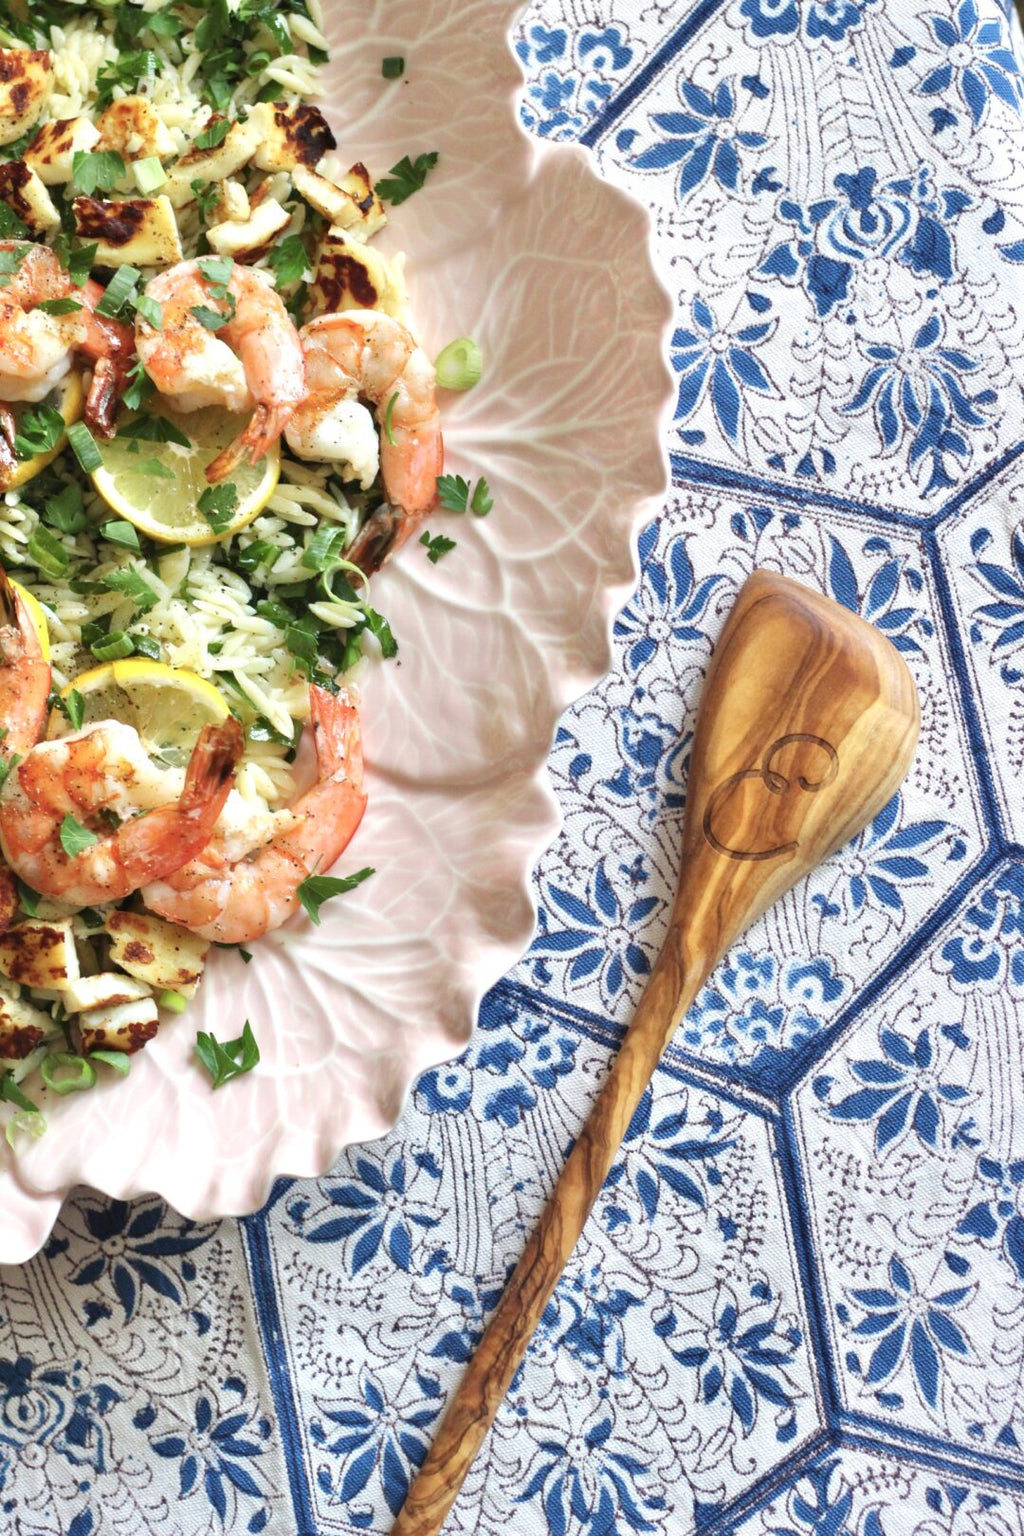 Orzo With Grilled Shrimp by Stuffy Muffy